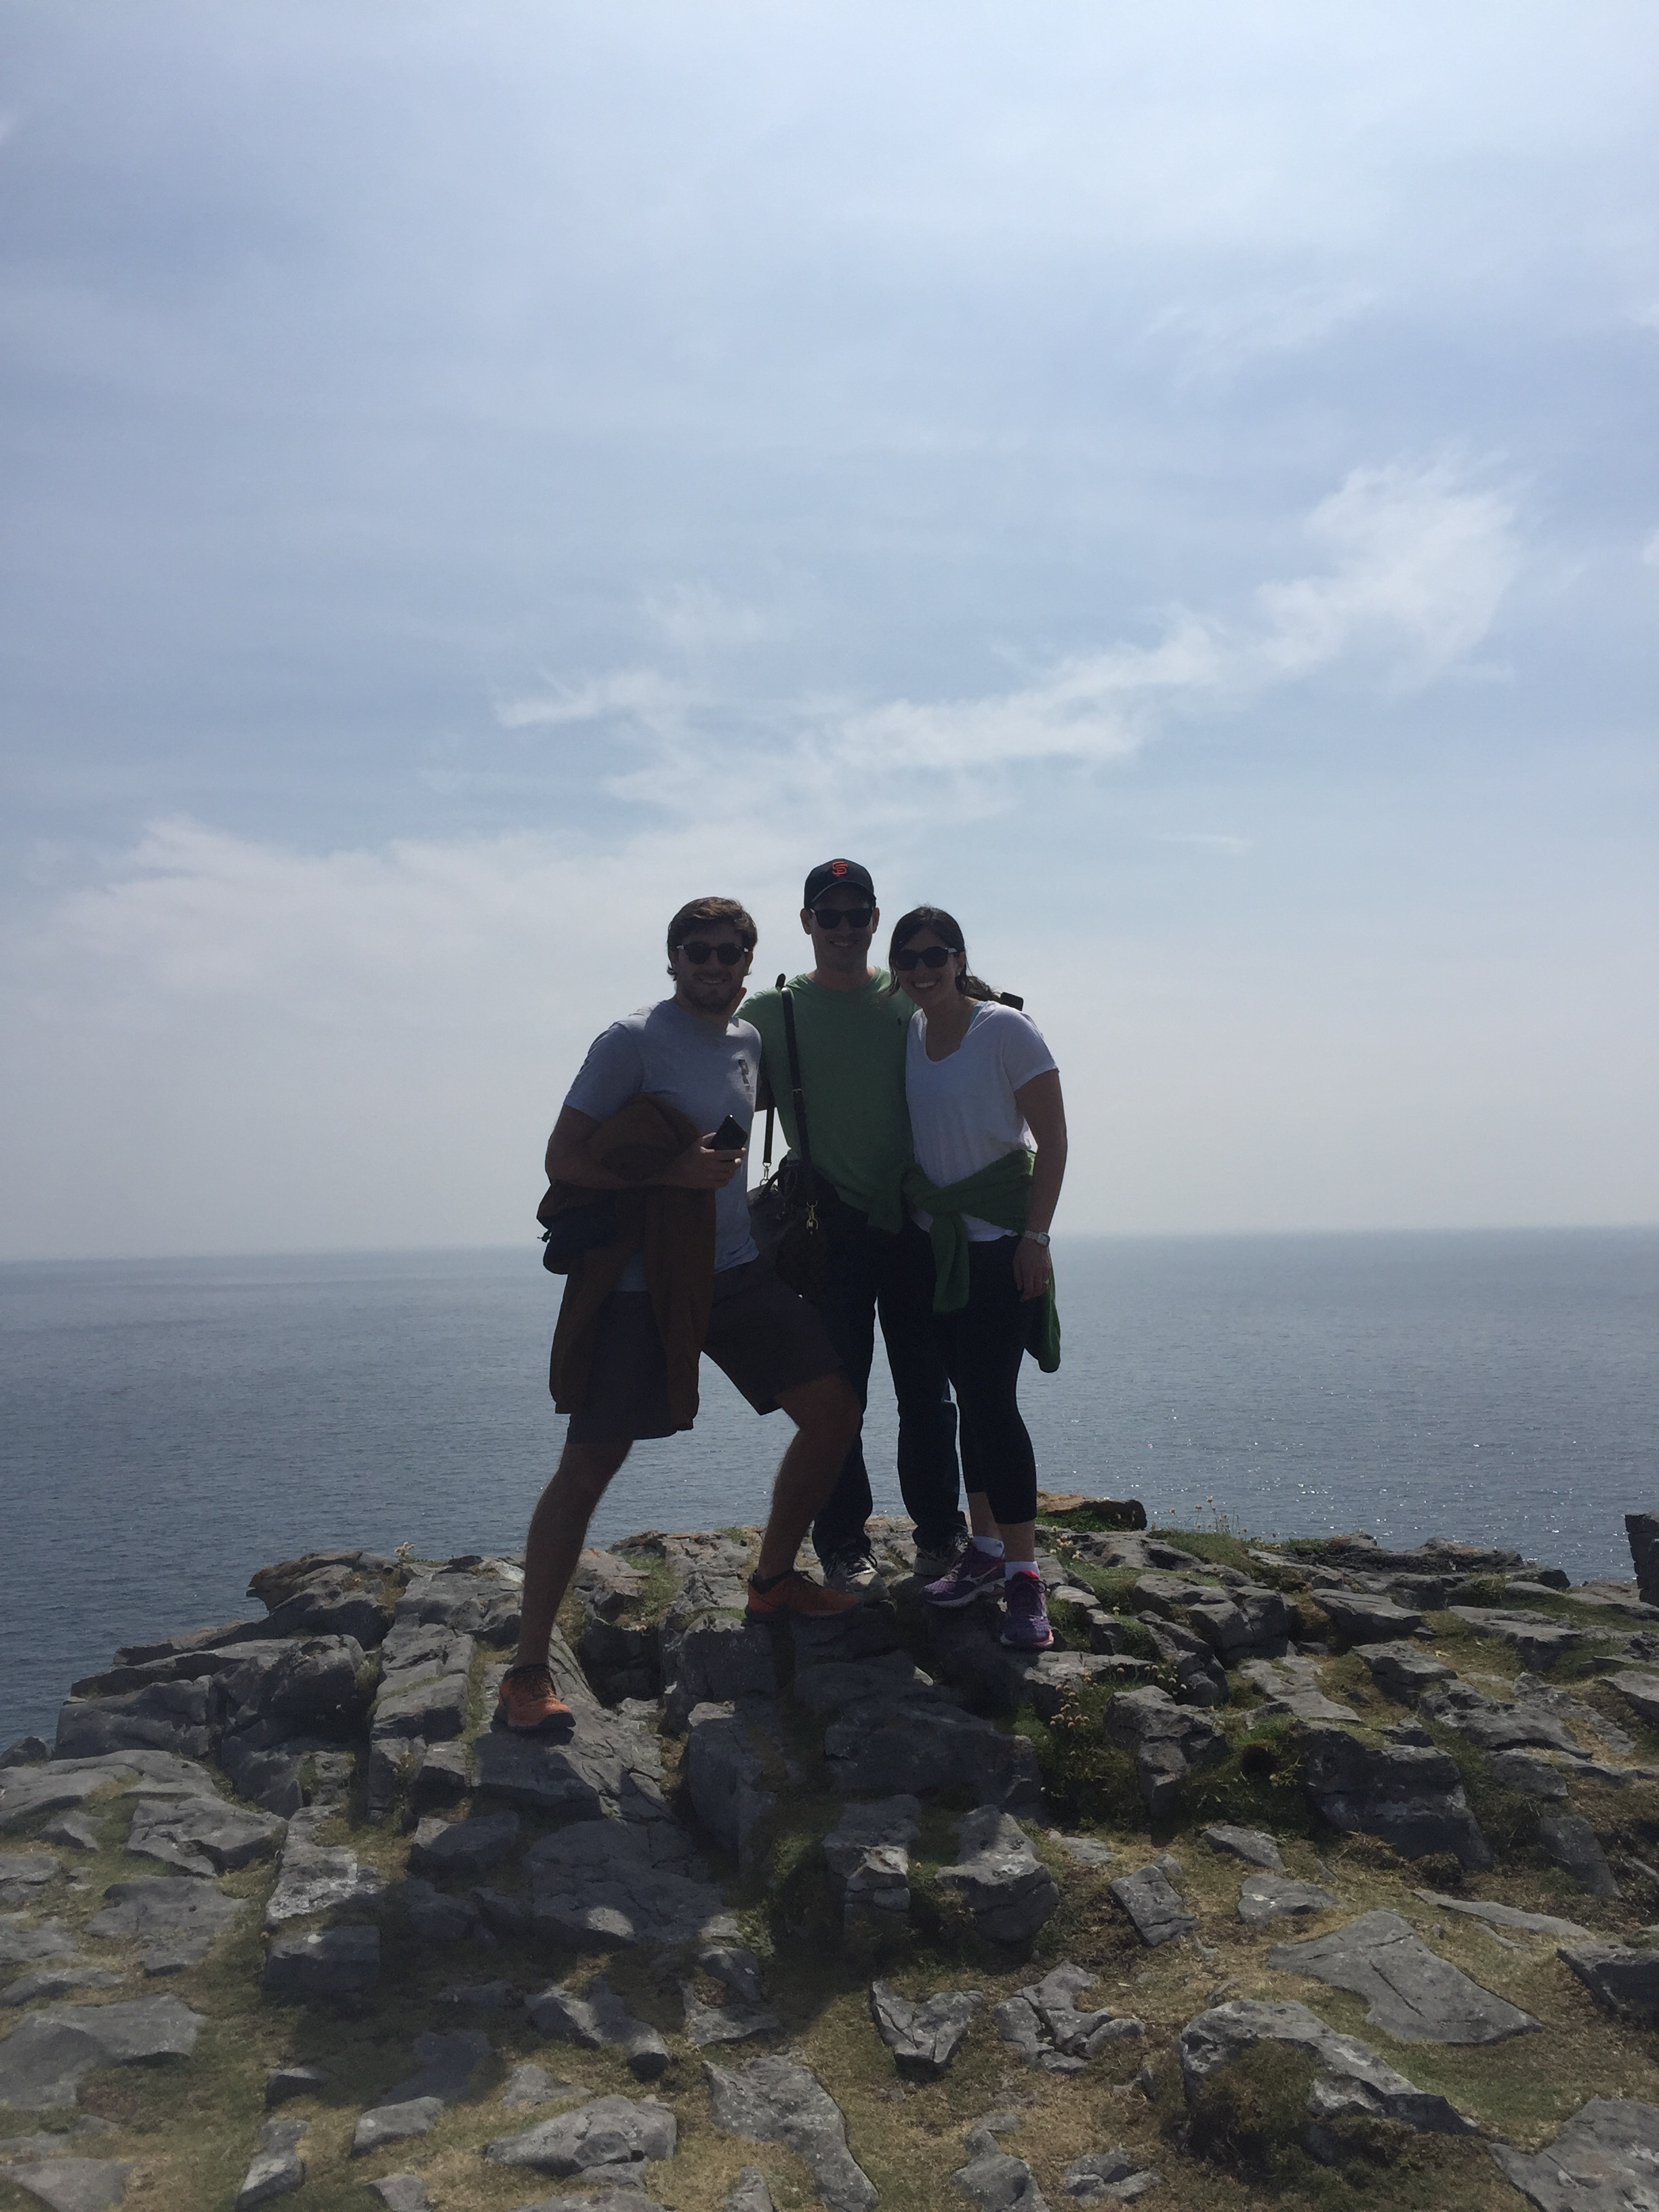 Top of Dun Aonghasa, a fort on Inishmore